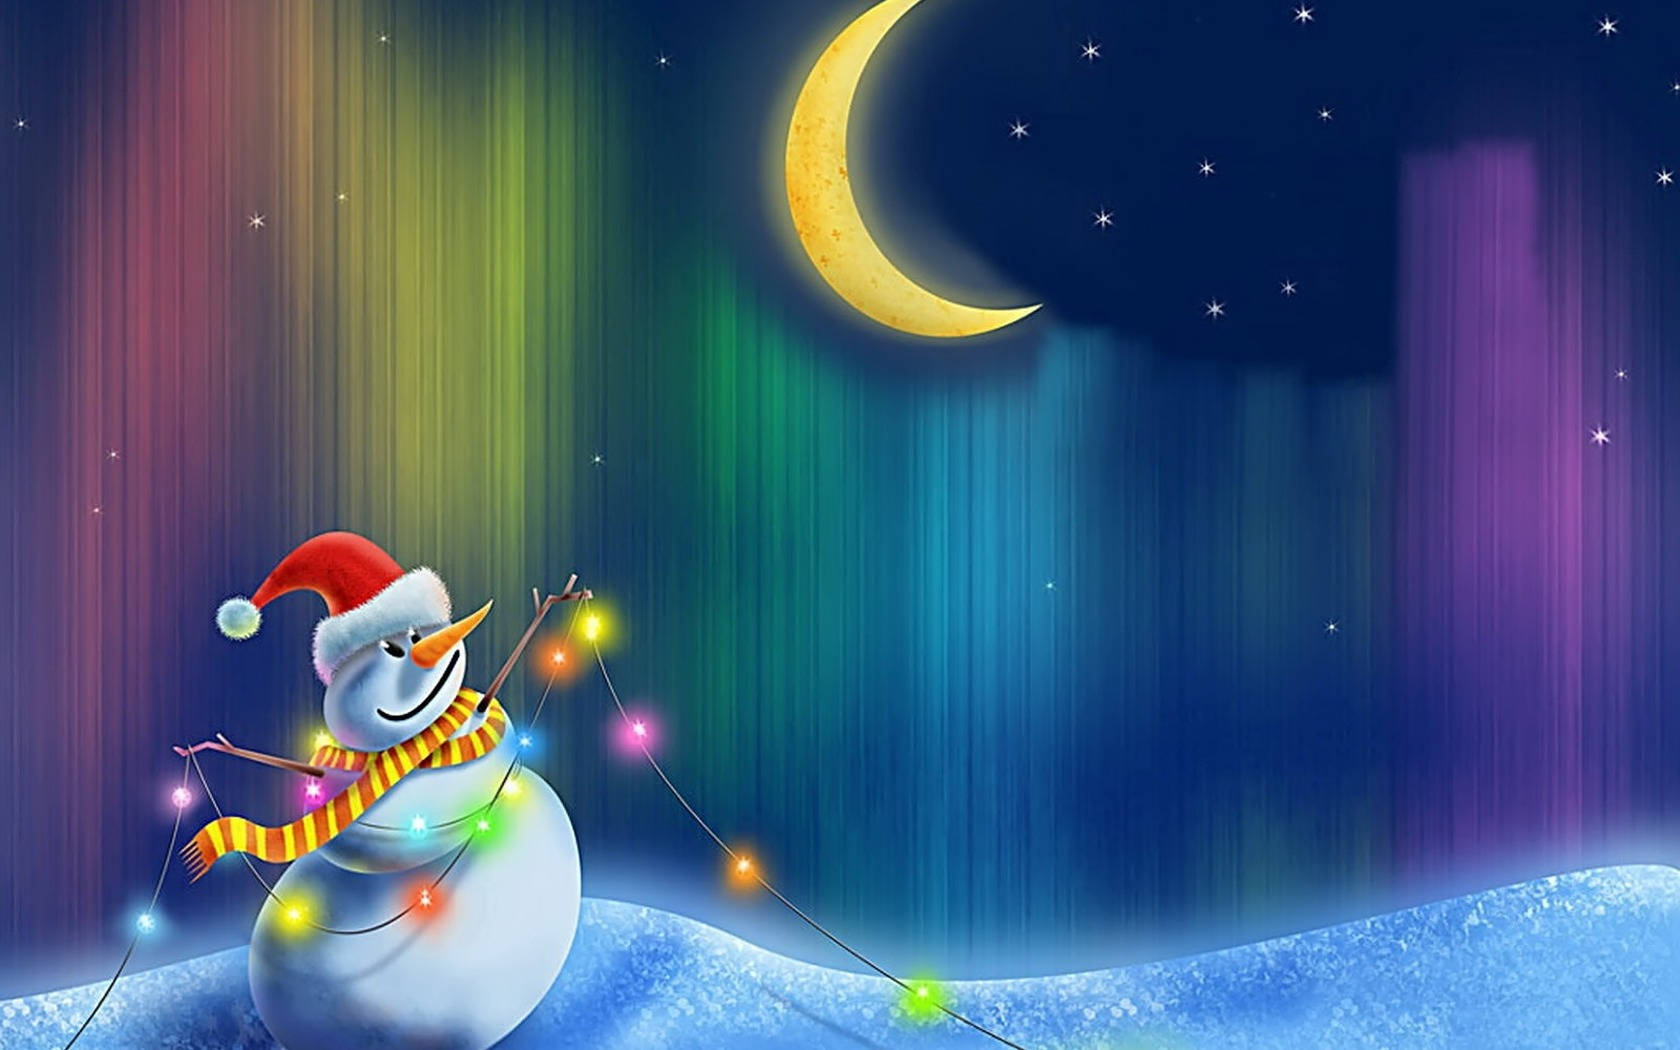 animated christmas wallpapers for desktop 1680x1050 - Animated Christmas Wallpaper